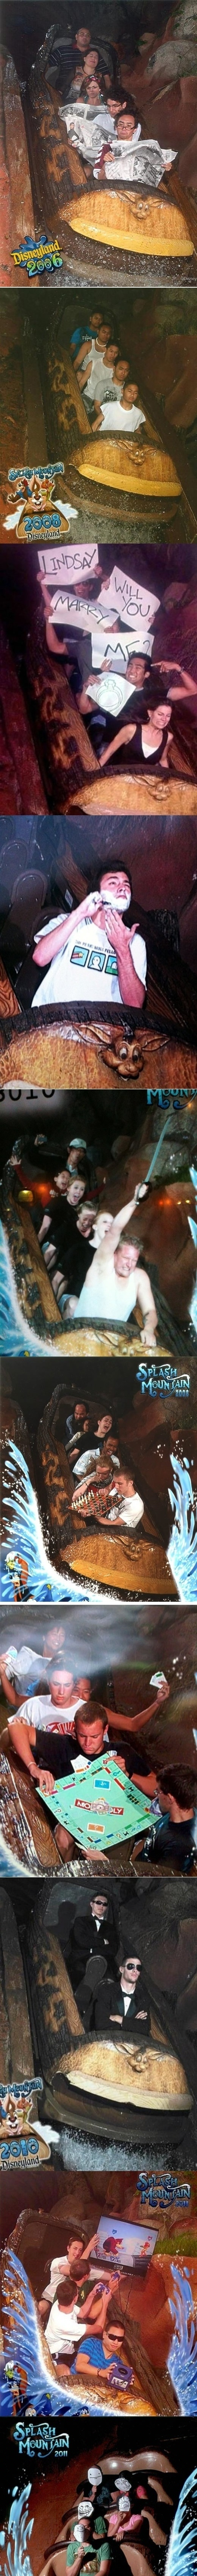 Disneyland's Splash Mountain